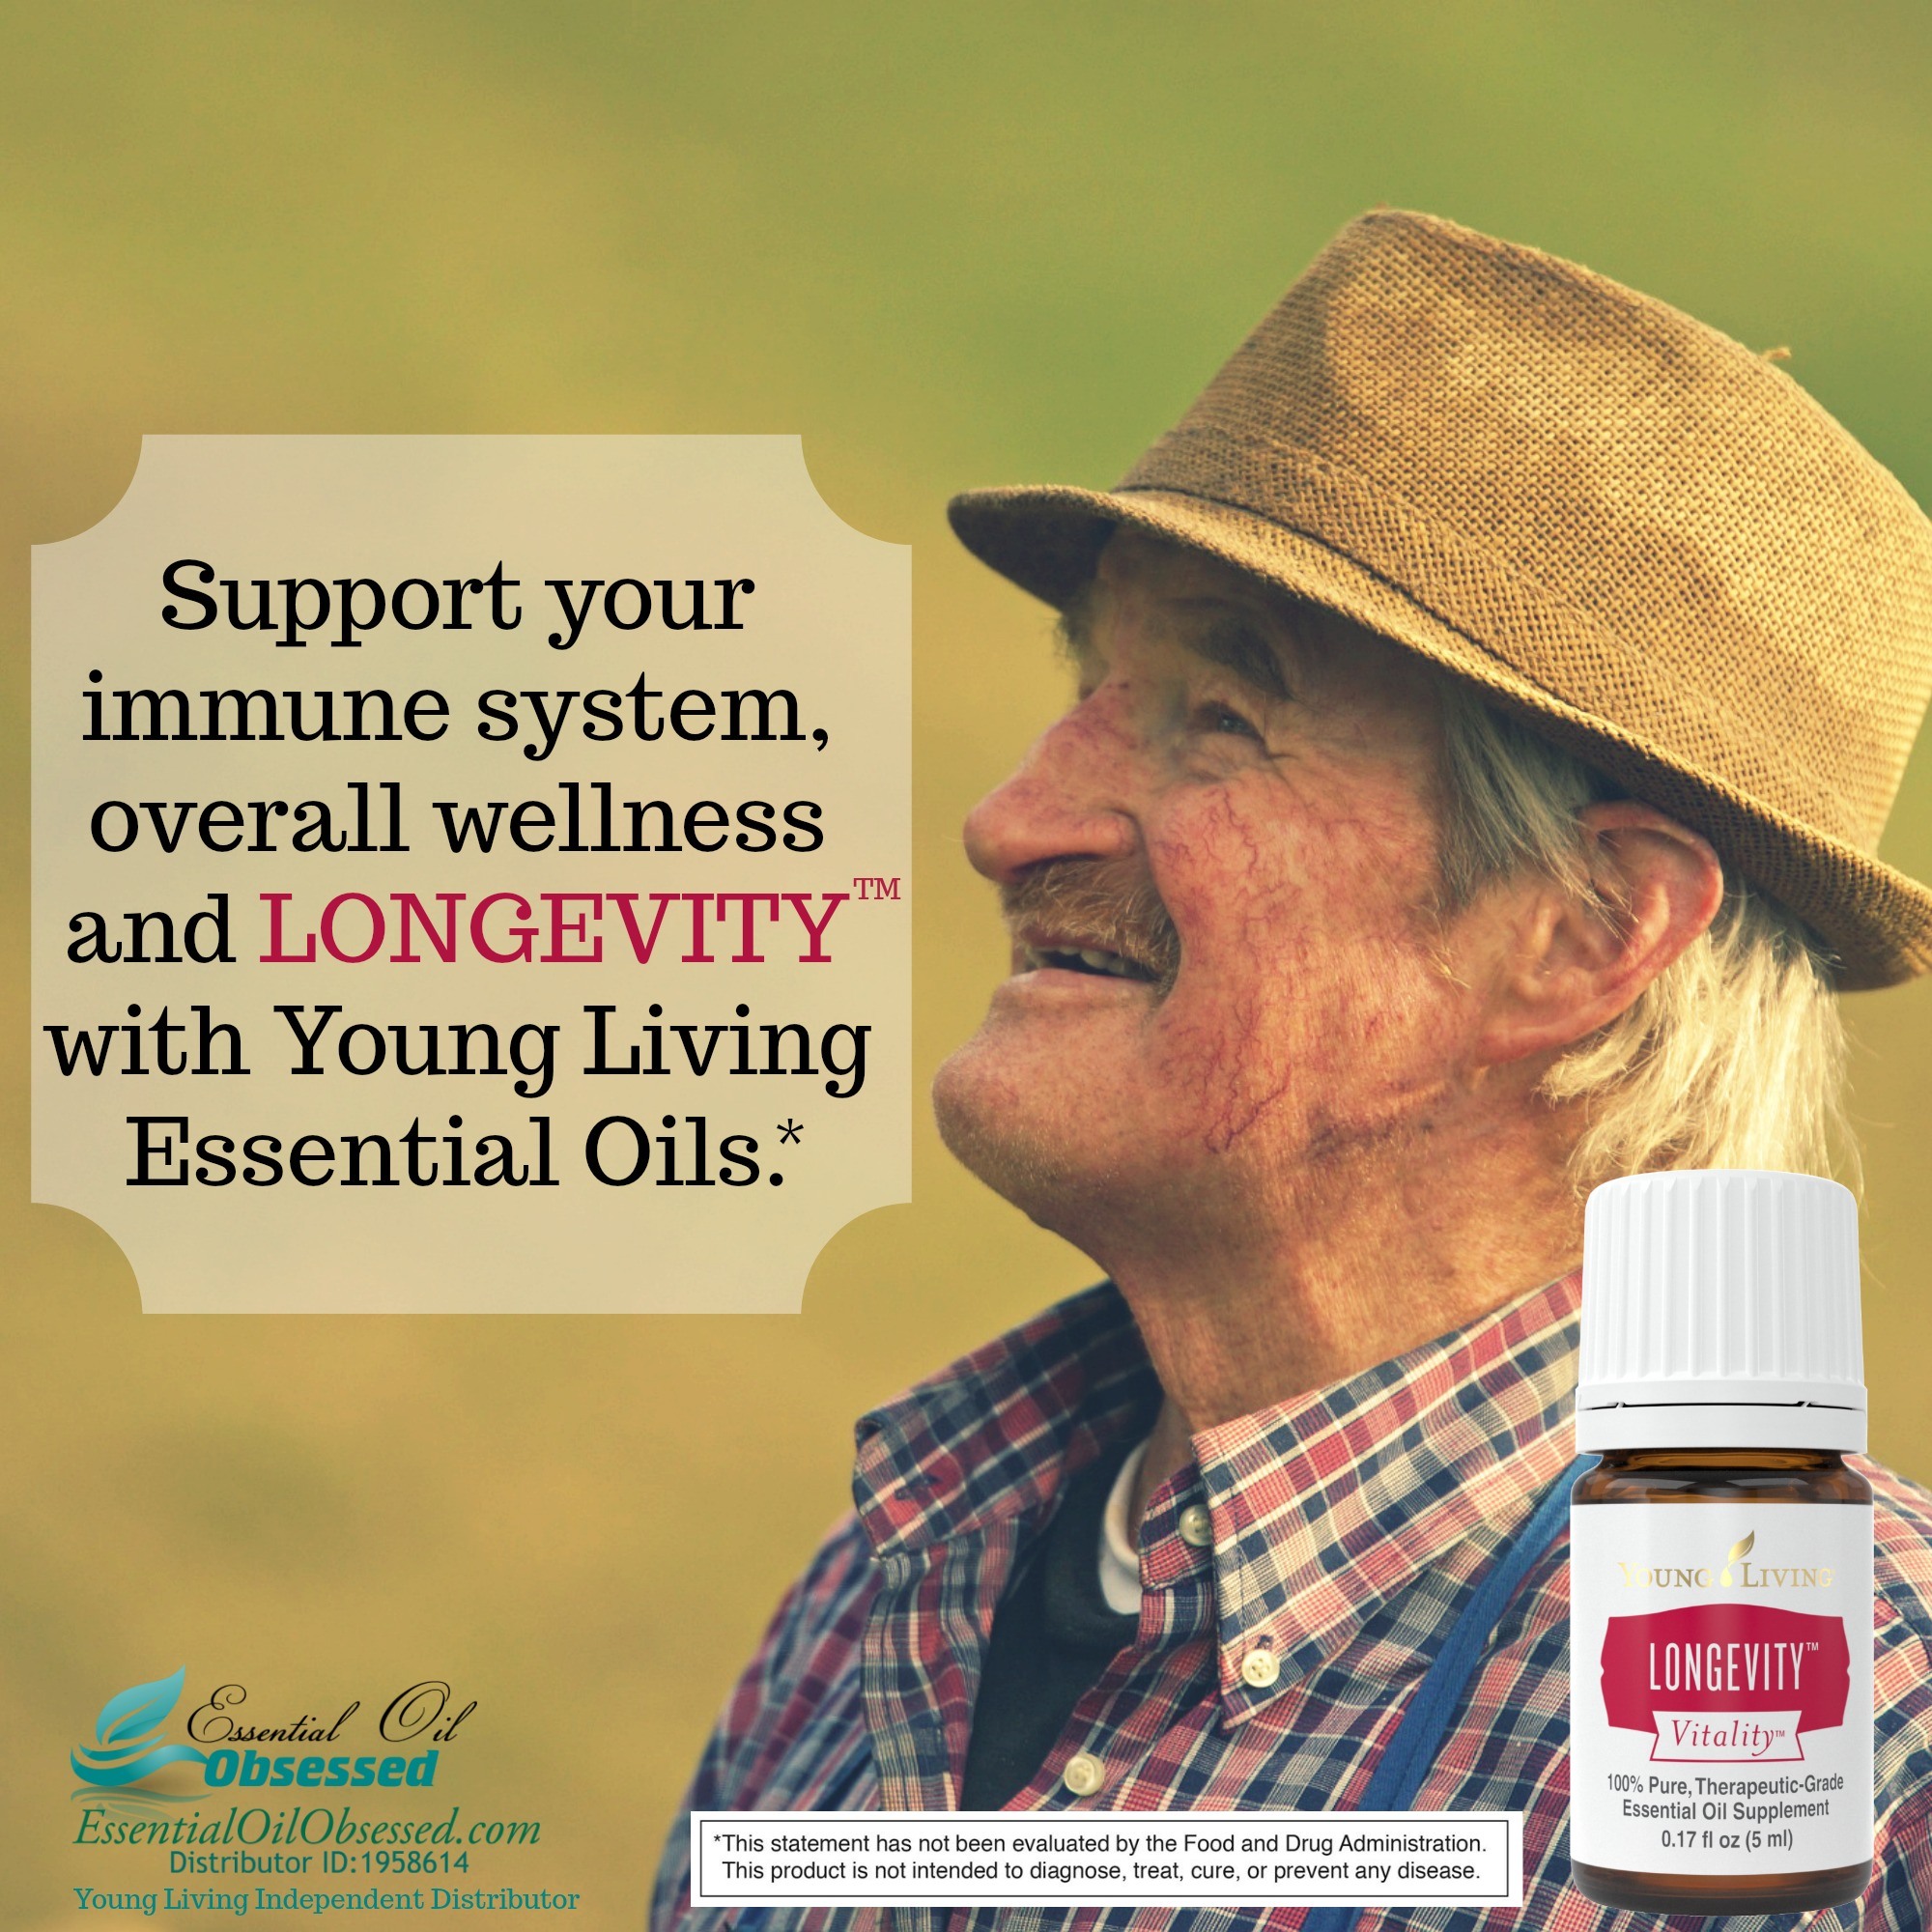 Longevity Vitality Essential Oil Essential Oil Obsessed